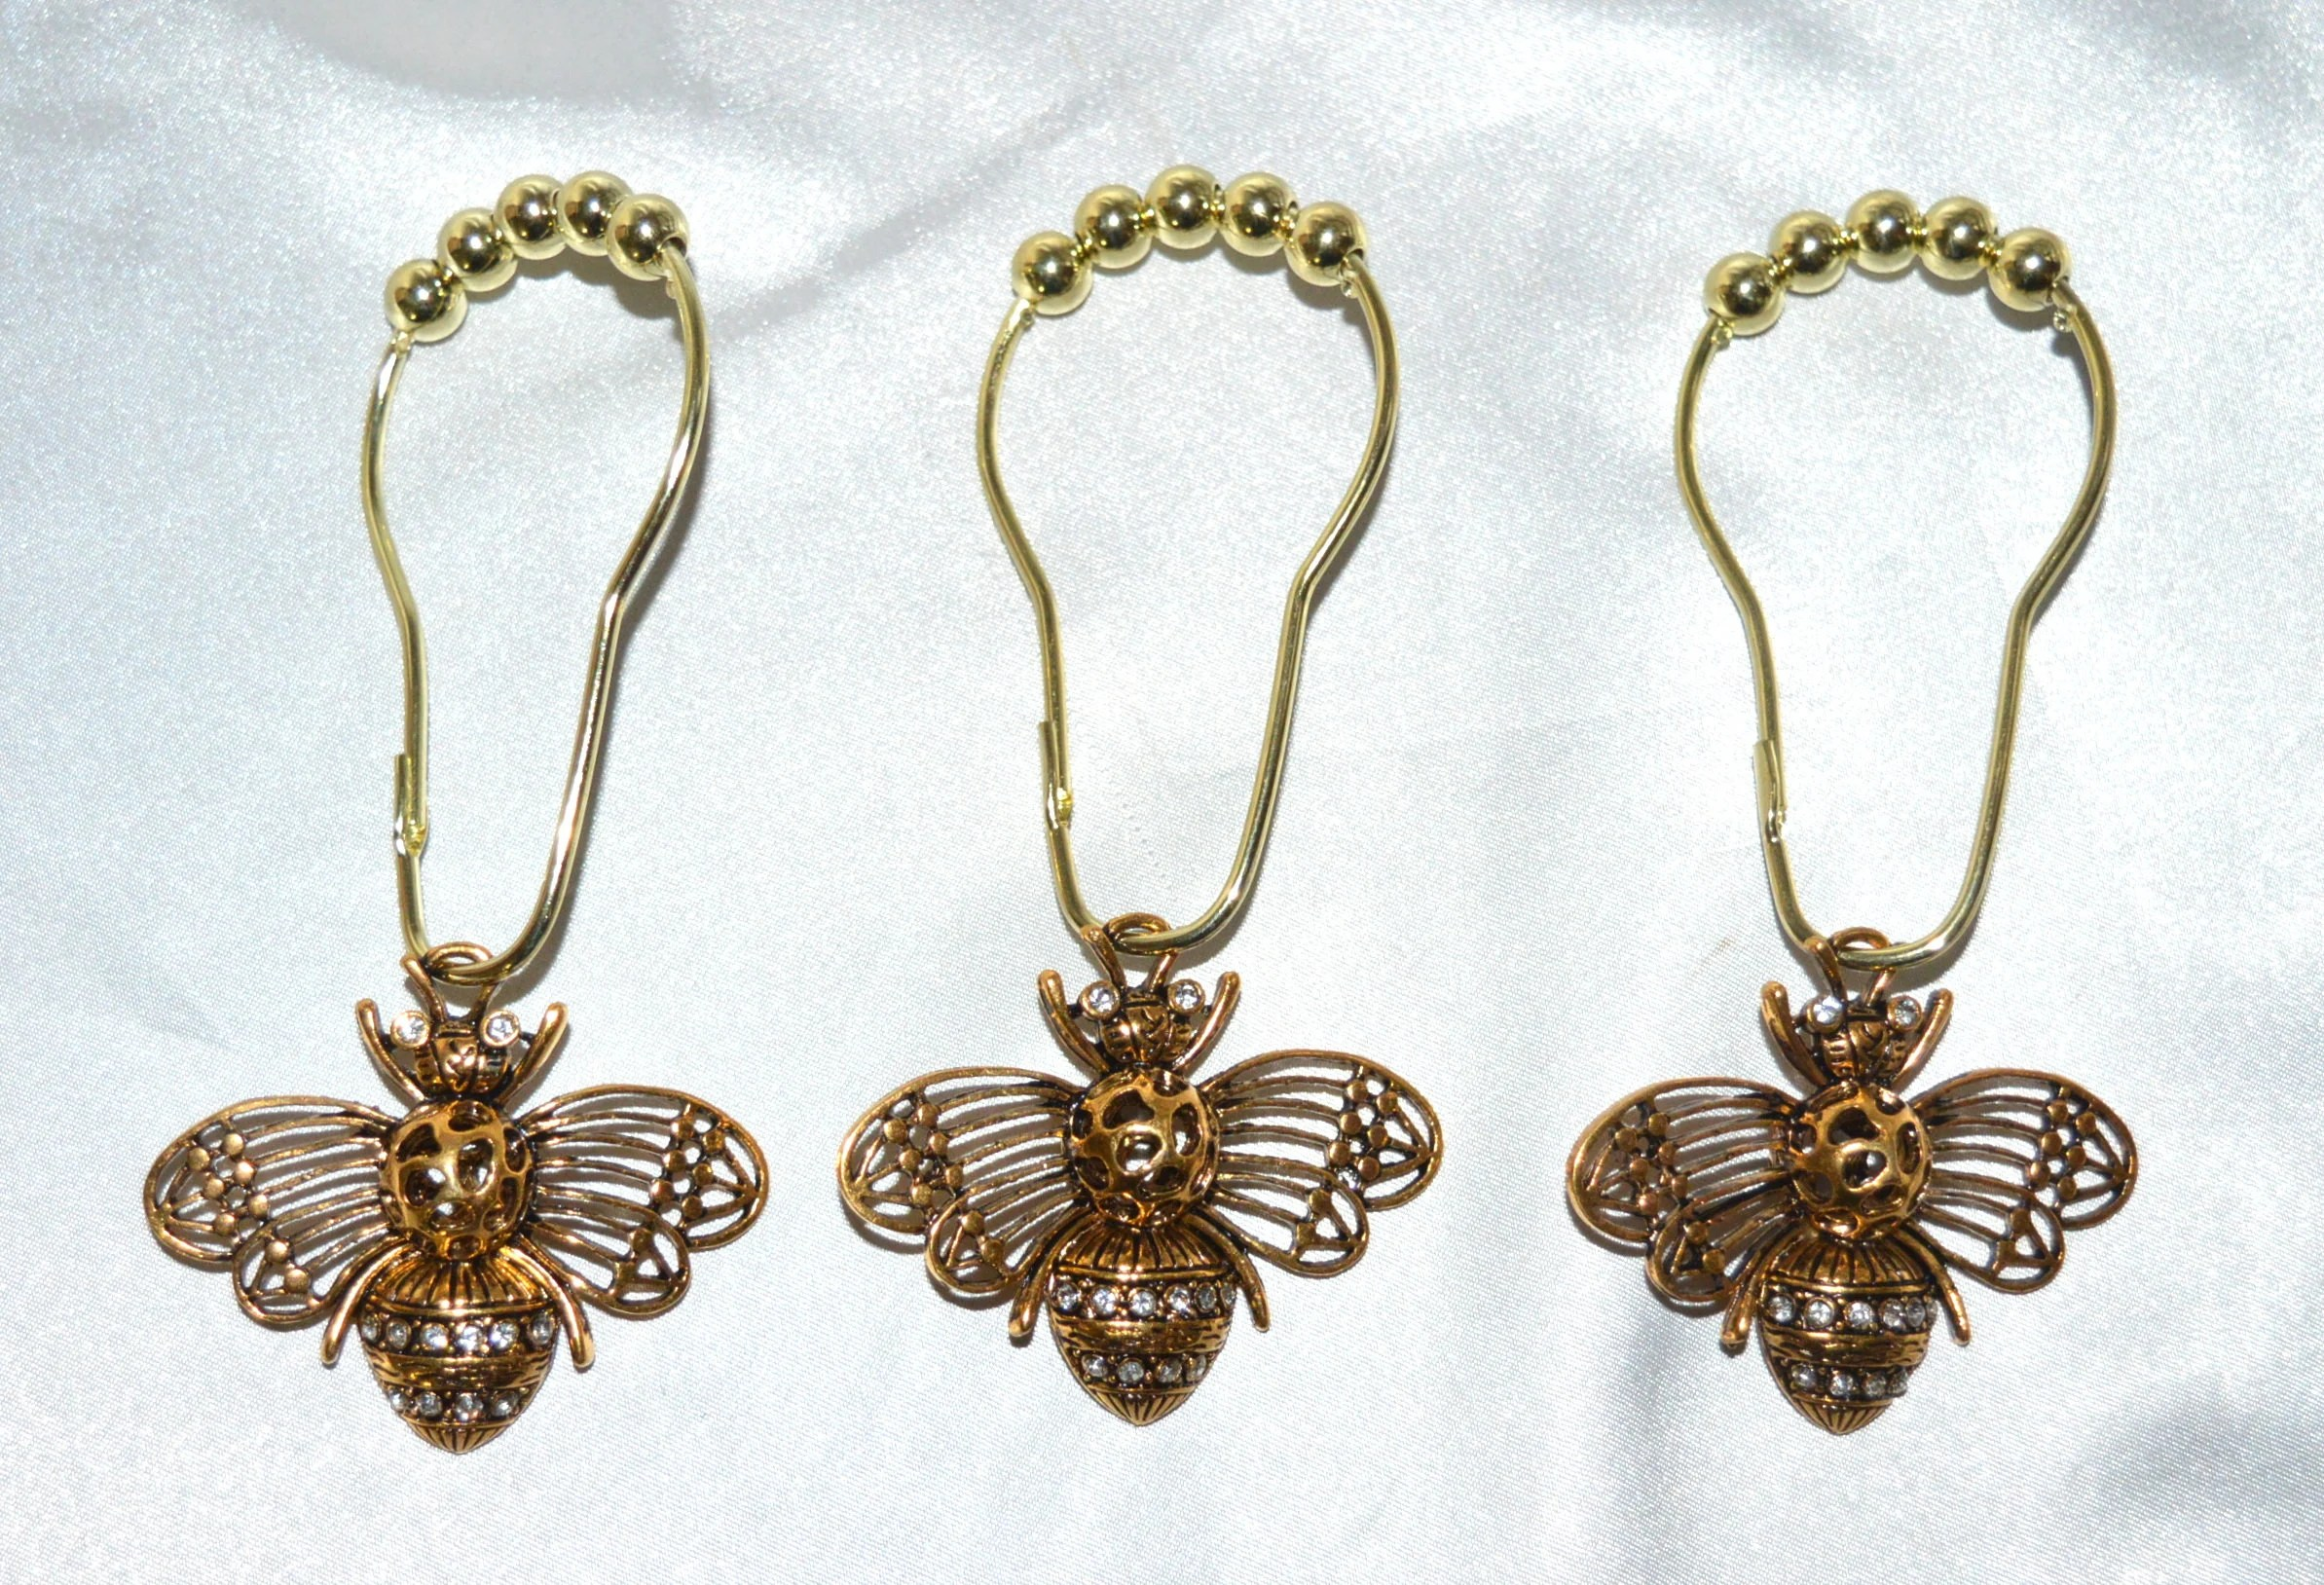 Gold Bee Shower Curtain Hooks Set Of 12 Xl Antique Gold W Clear Rhinestones Shabby French Cottage Chic French Country Garden